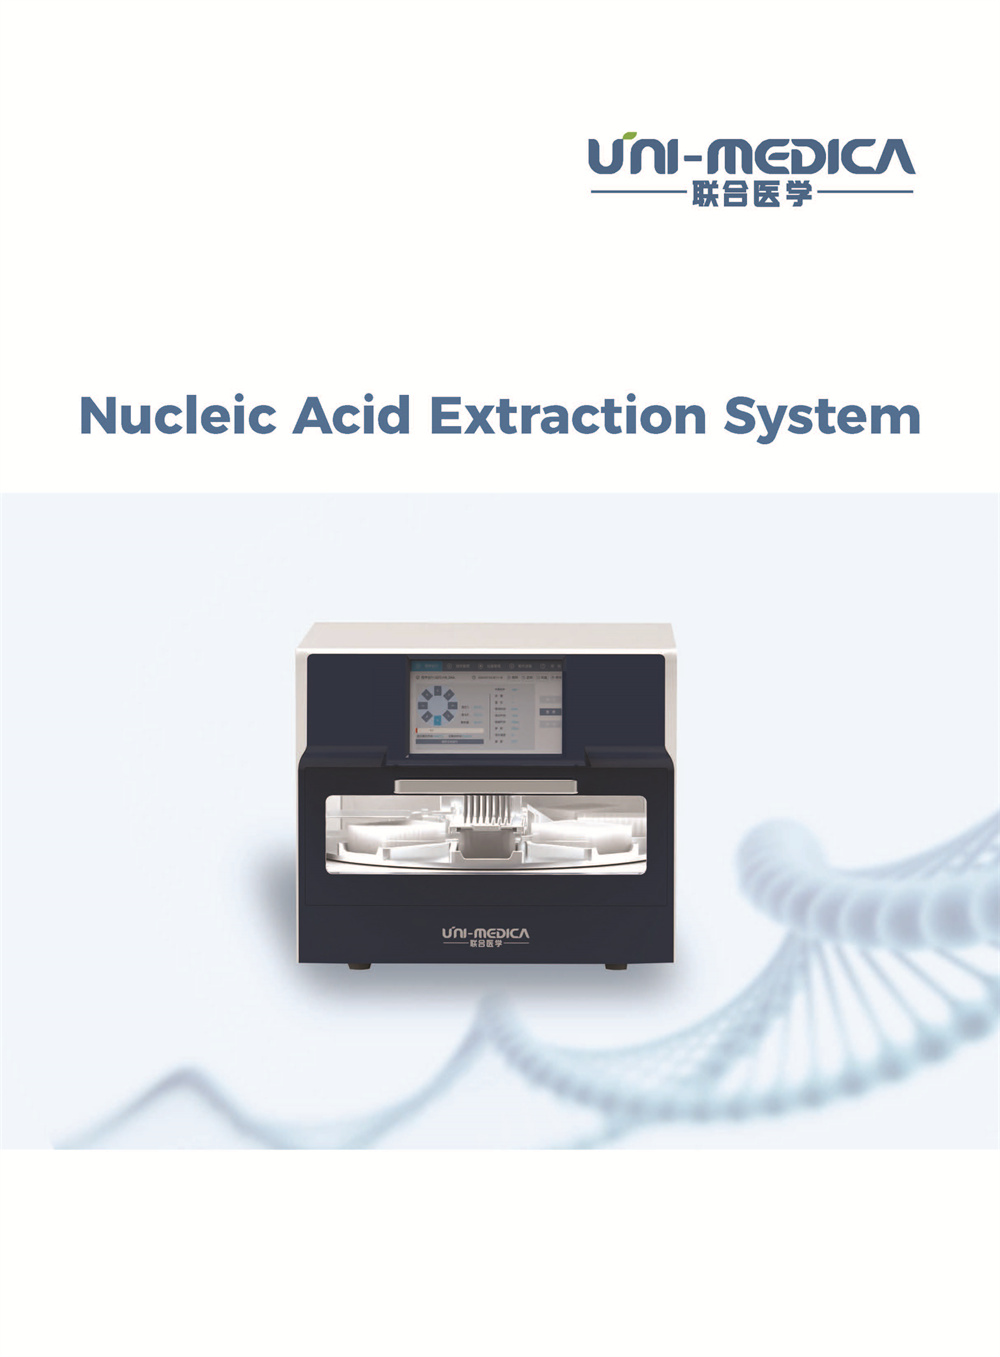 NUCLEIC ACID EXTRACTION SYSTEM R1